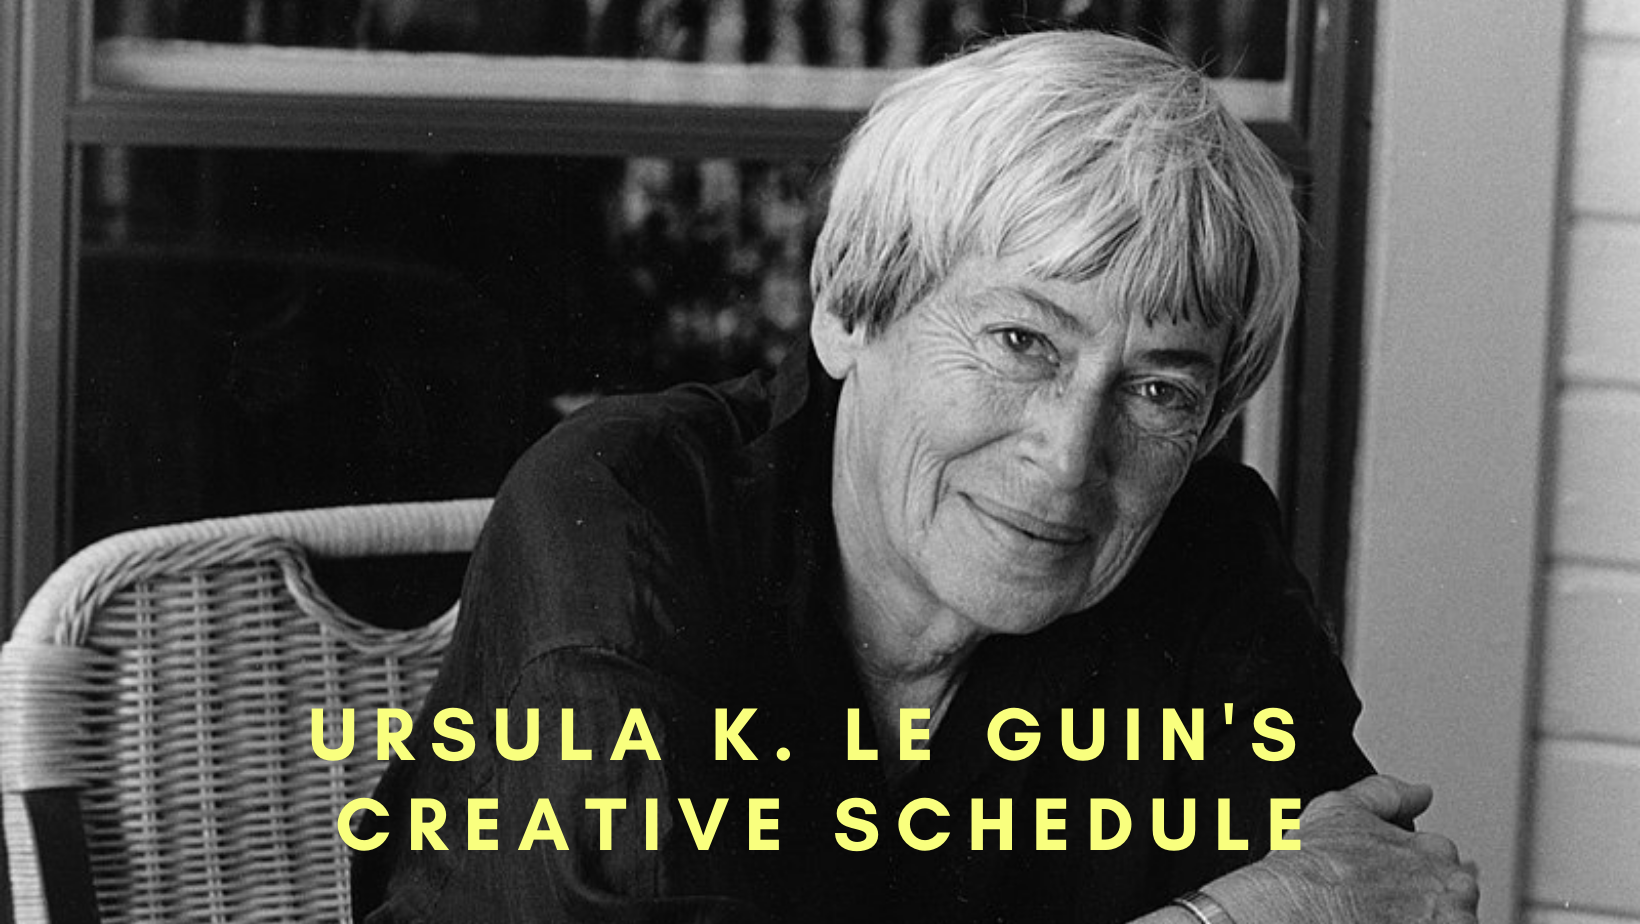 Black & White portrait of Ursula K. Le Guin with yellow text: Ursula K. Le Guin's Creative schedule.